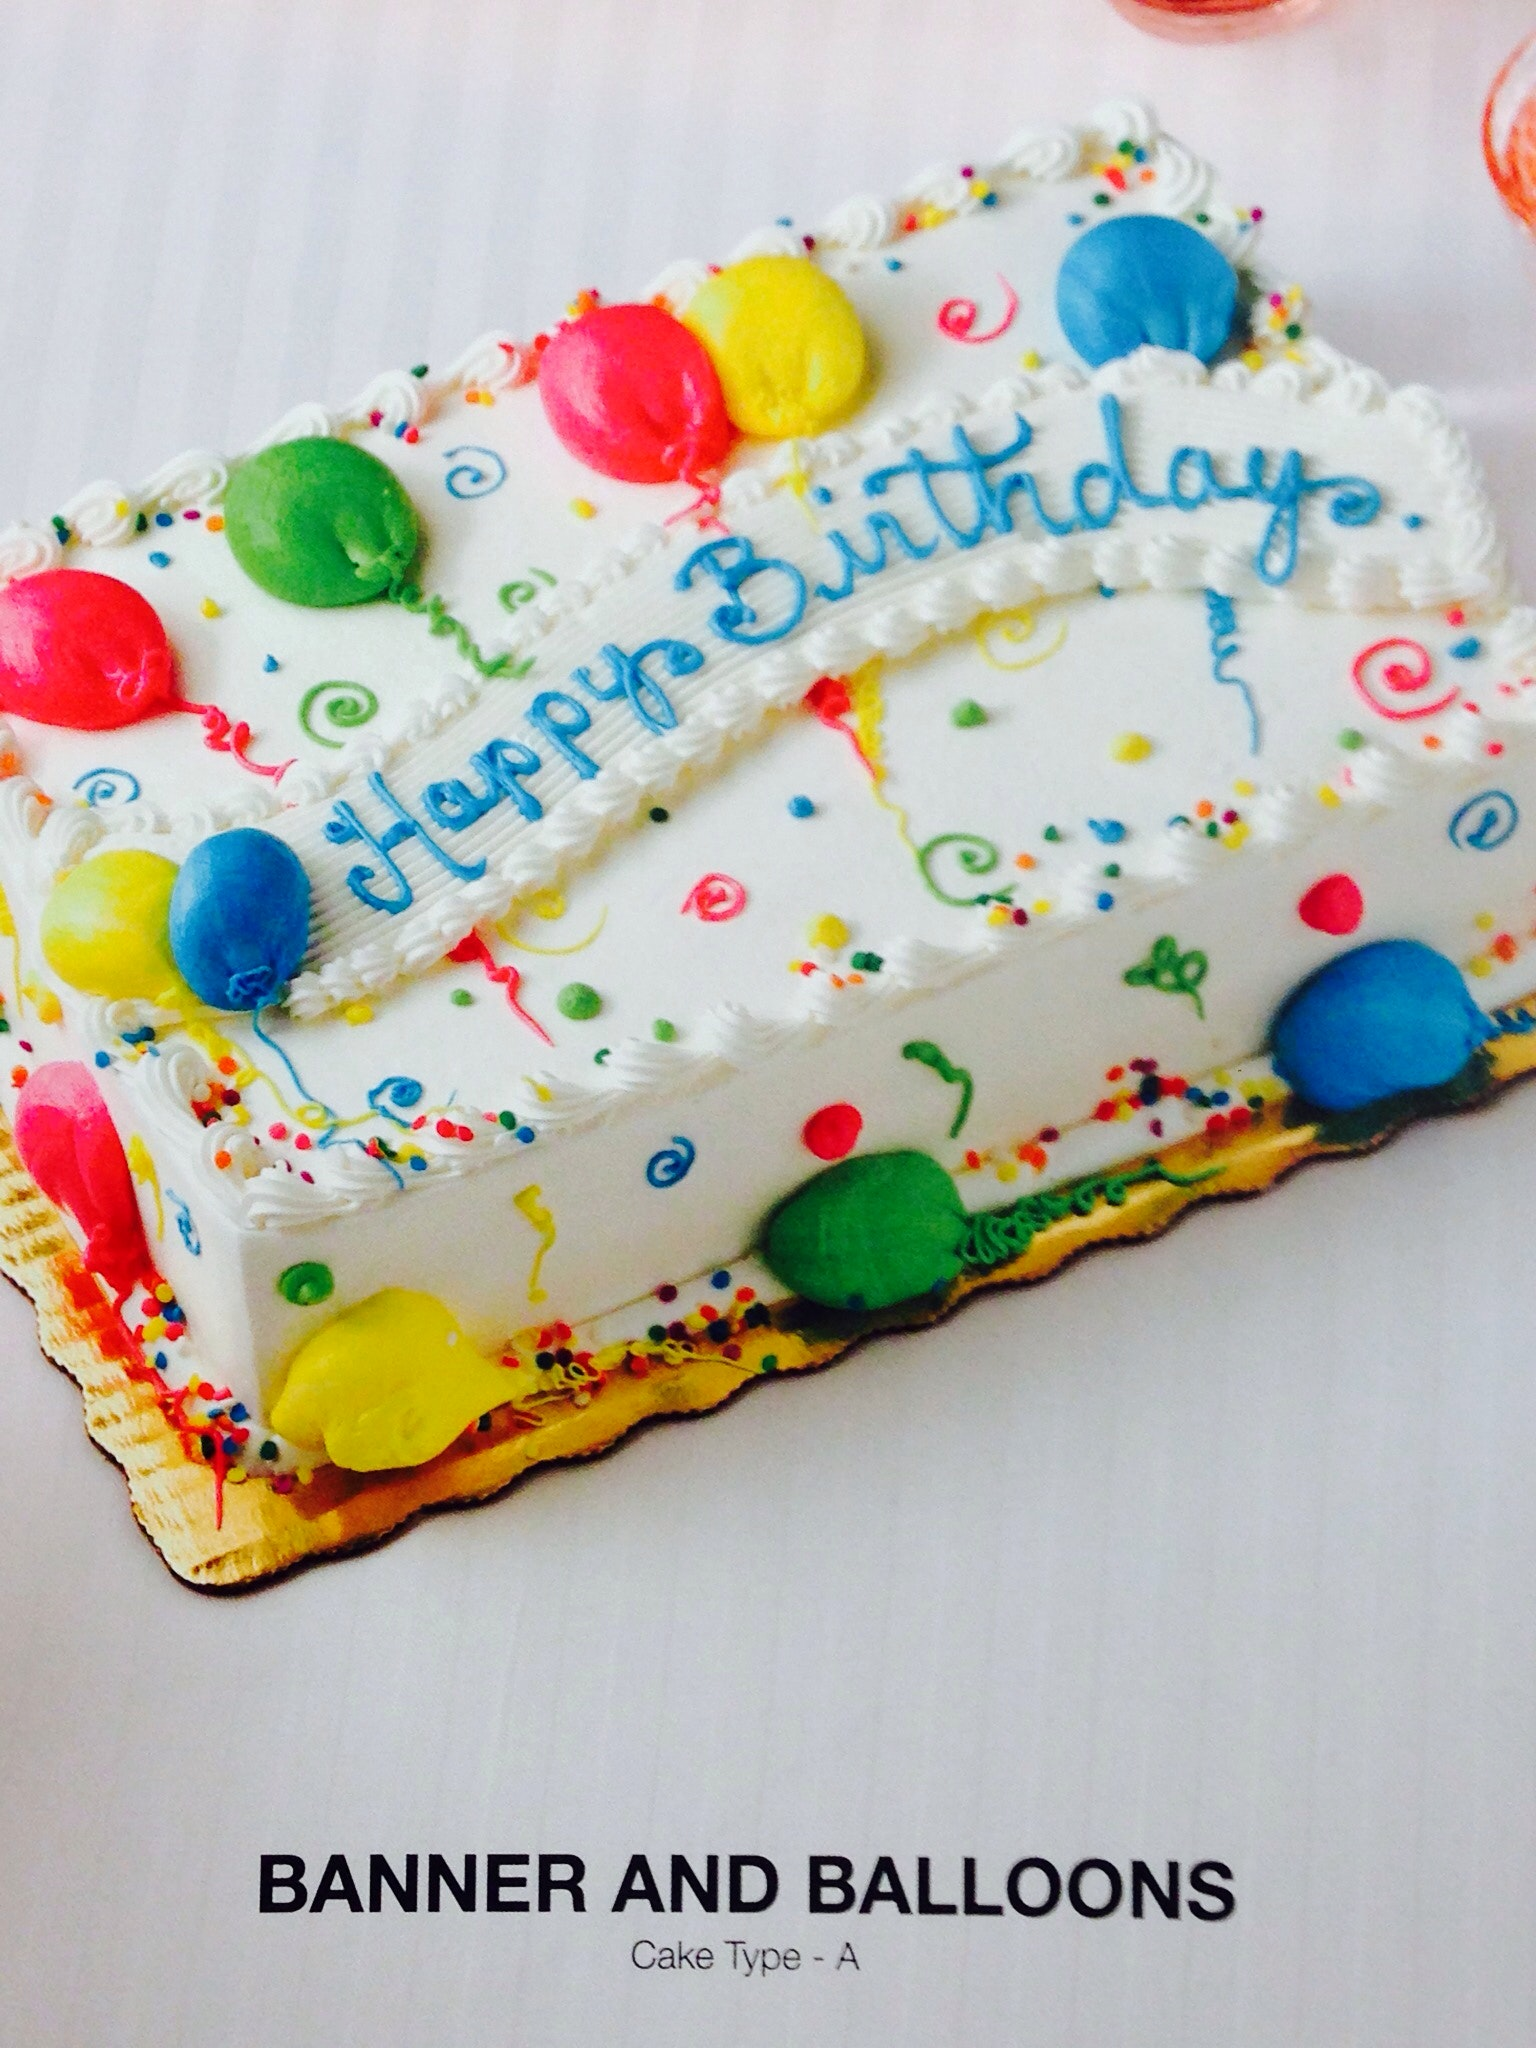 decorating a sheet cake for birthday ; impressive-inspiration-sheet-cake-decorating-ideas-and-stunning-buttercream-birthday-delicious-cakes